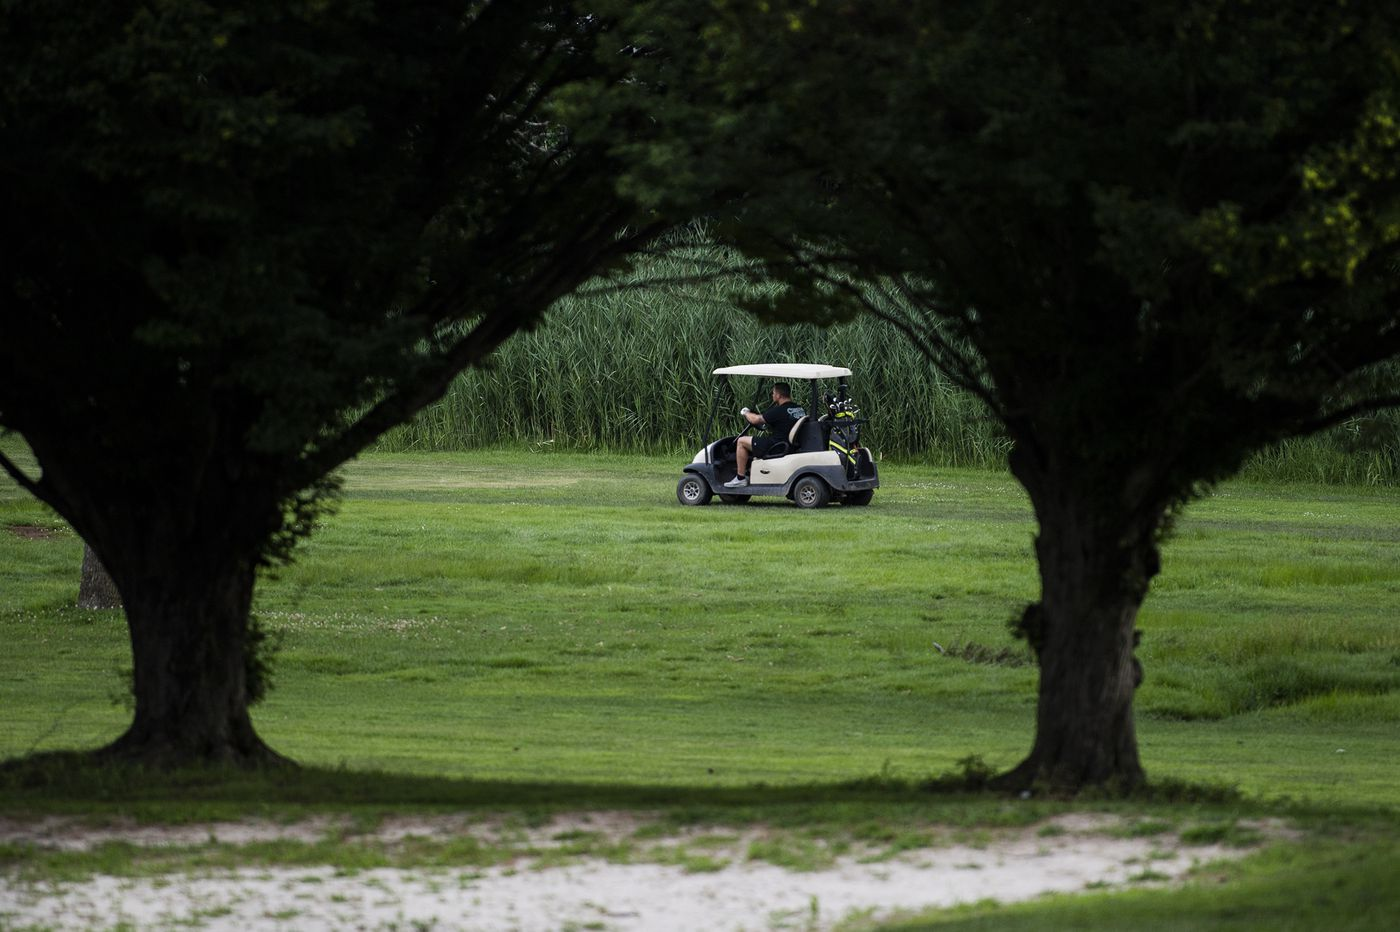 FDR Golf Club to close due to 'frequent flooding' and lack of profit